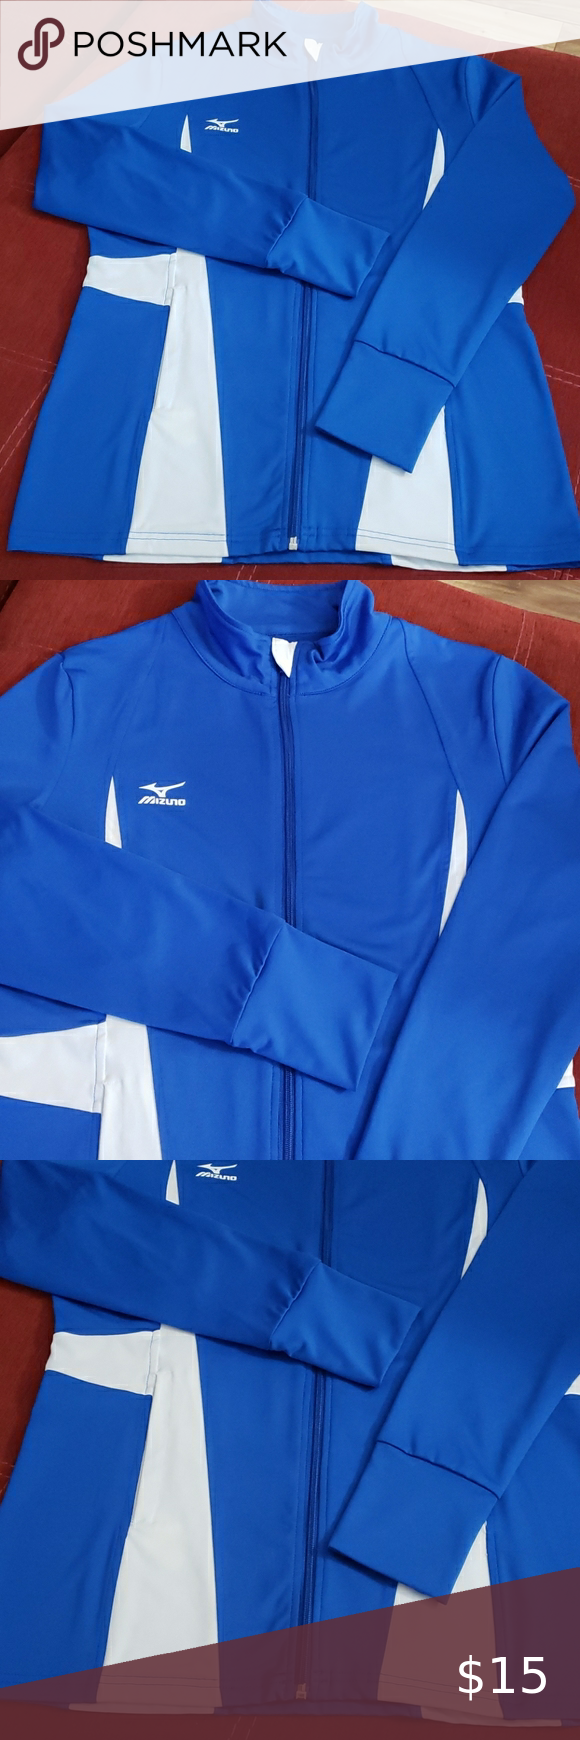 Mizuno Drylite Volleyball Warm Up Jacket In 2020 Volleyball Warm Ups Jackets Mizuno